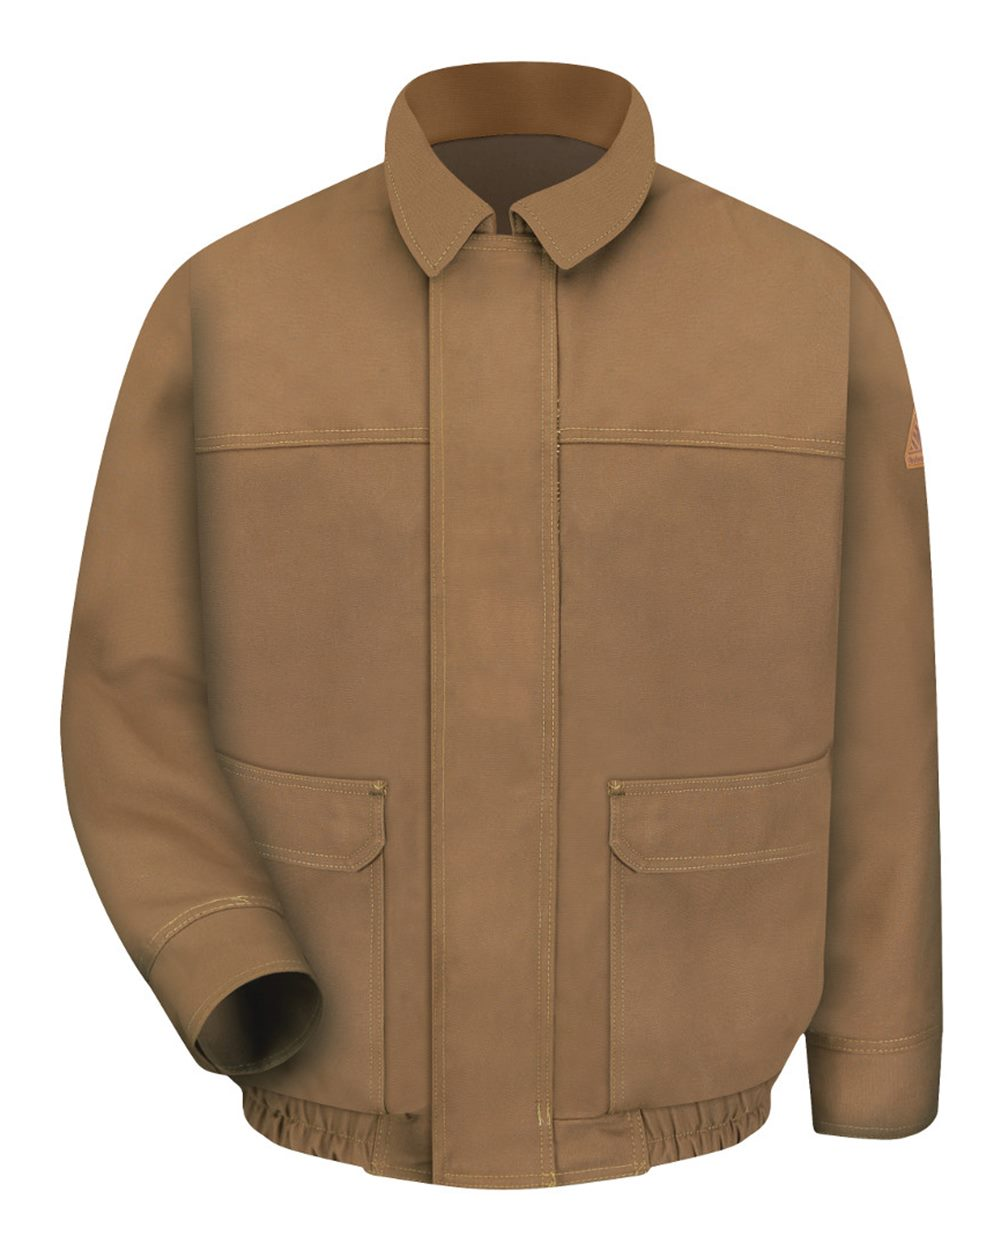 Brown Duck Lined Bomber Jacket - EXCEL FR® ComforTouch® - Long Sizes